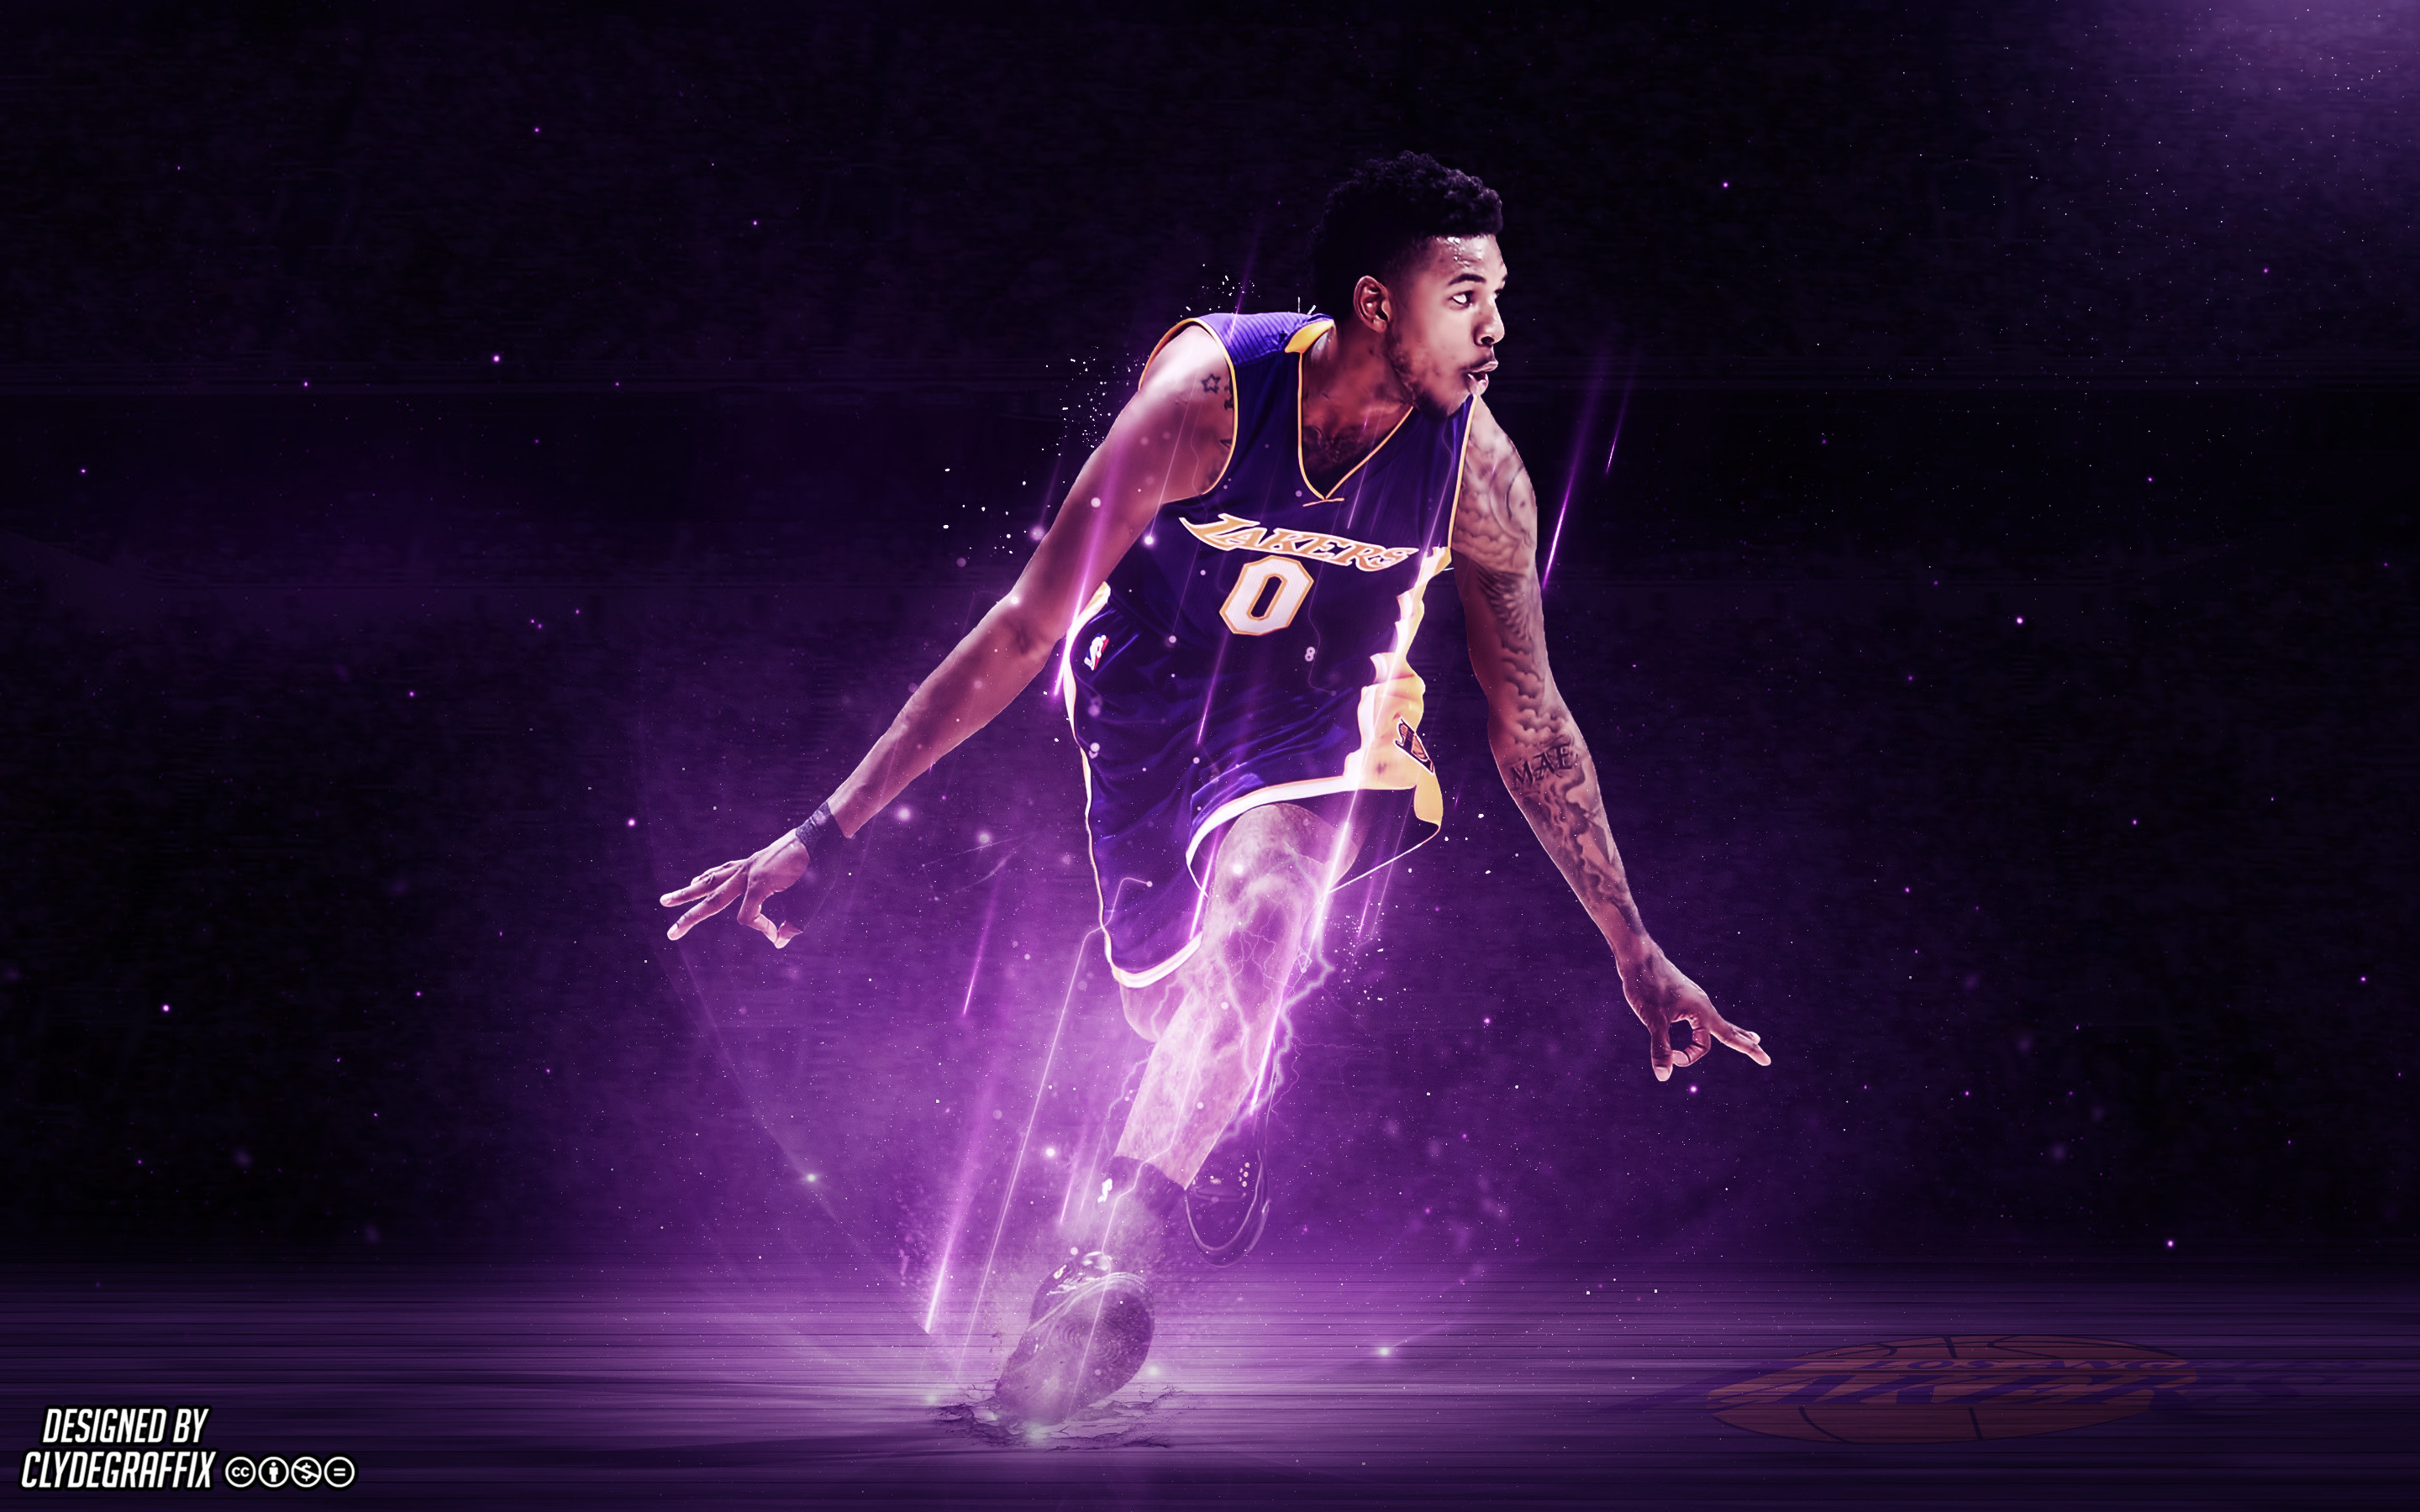 Made a Nick Young wallpaper I thought some of you might like!